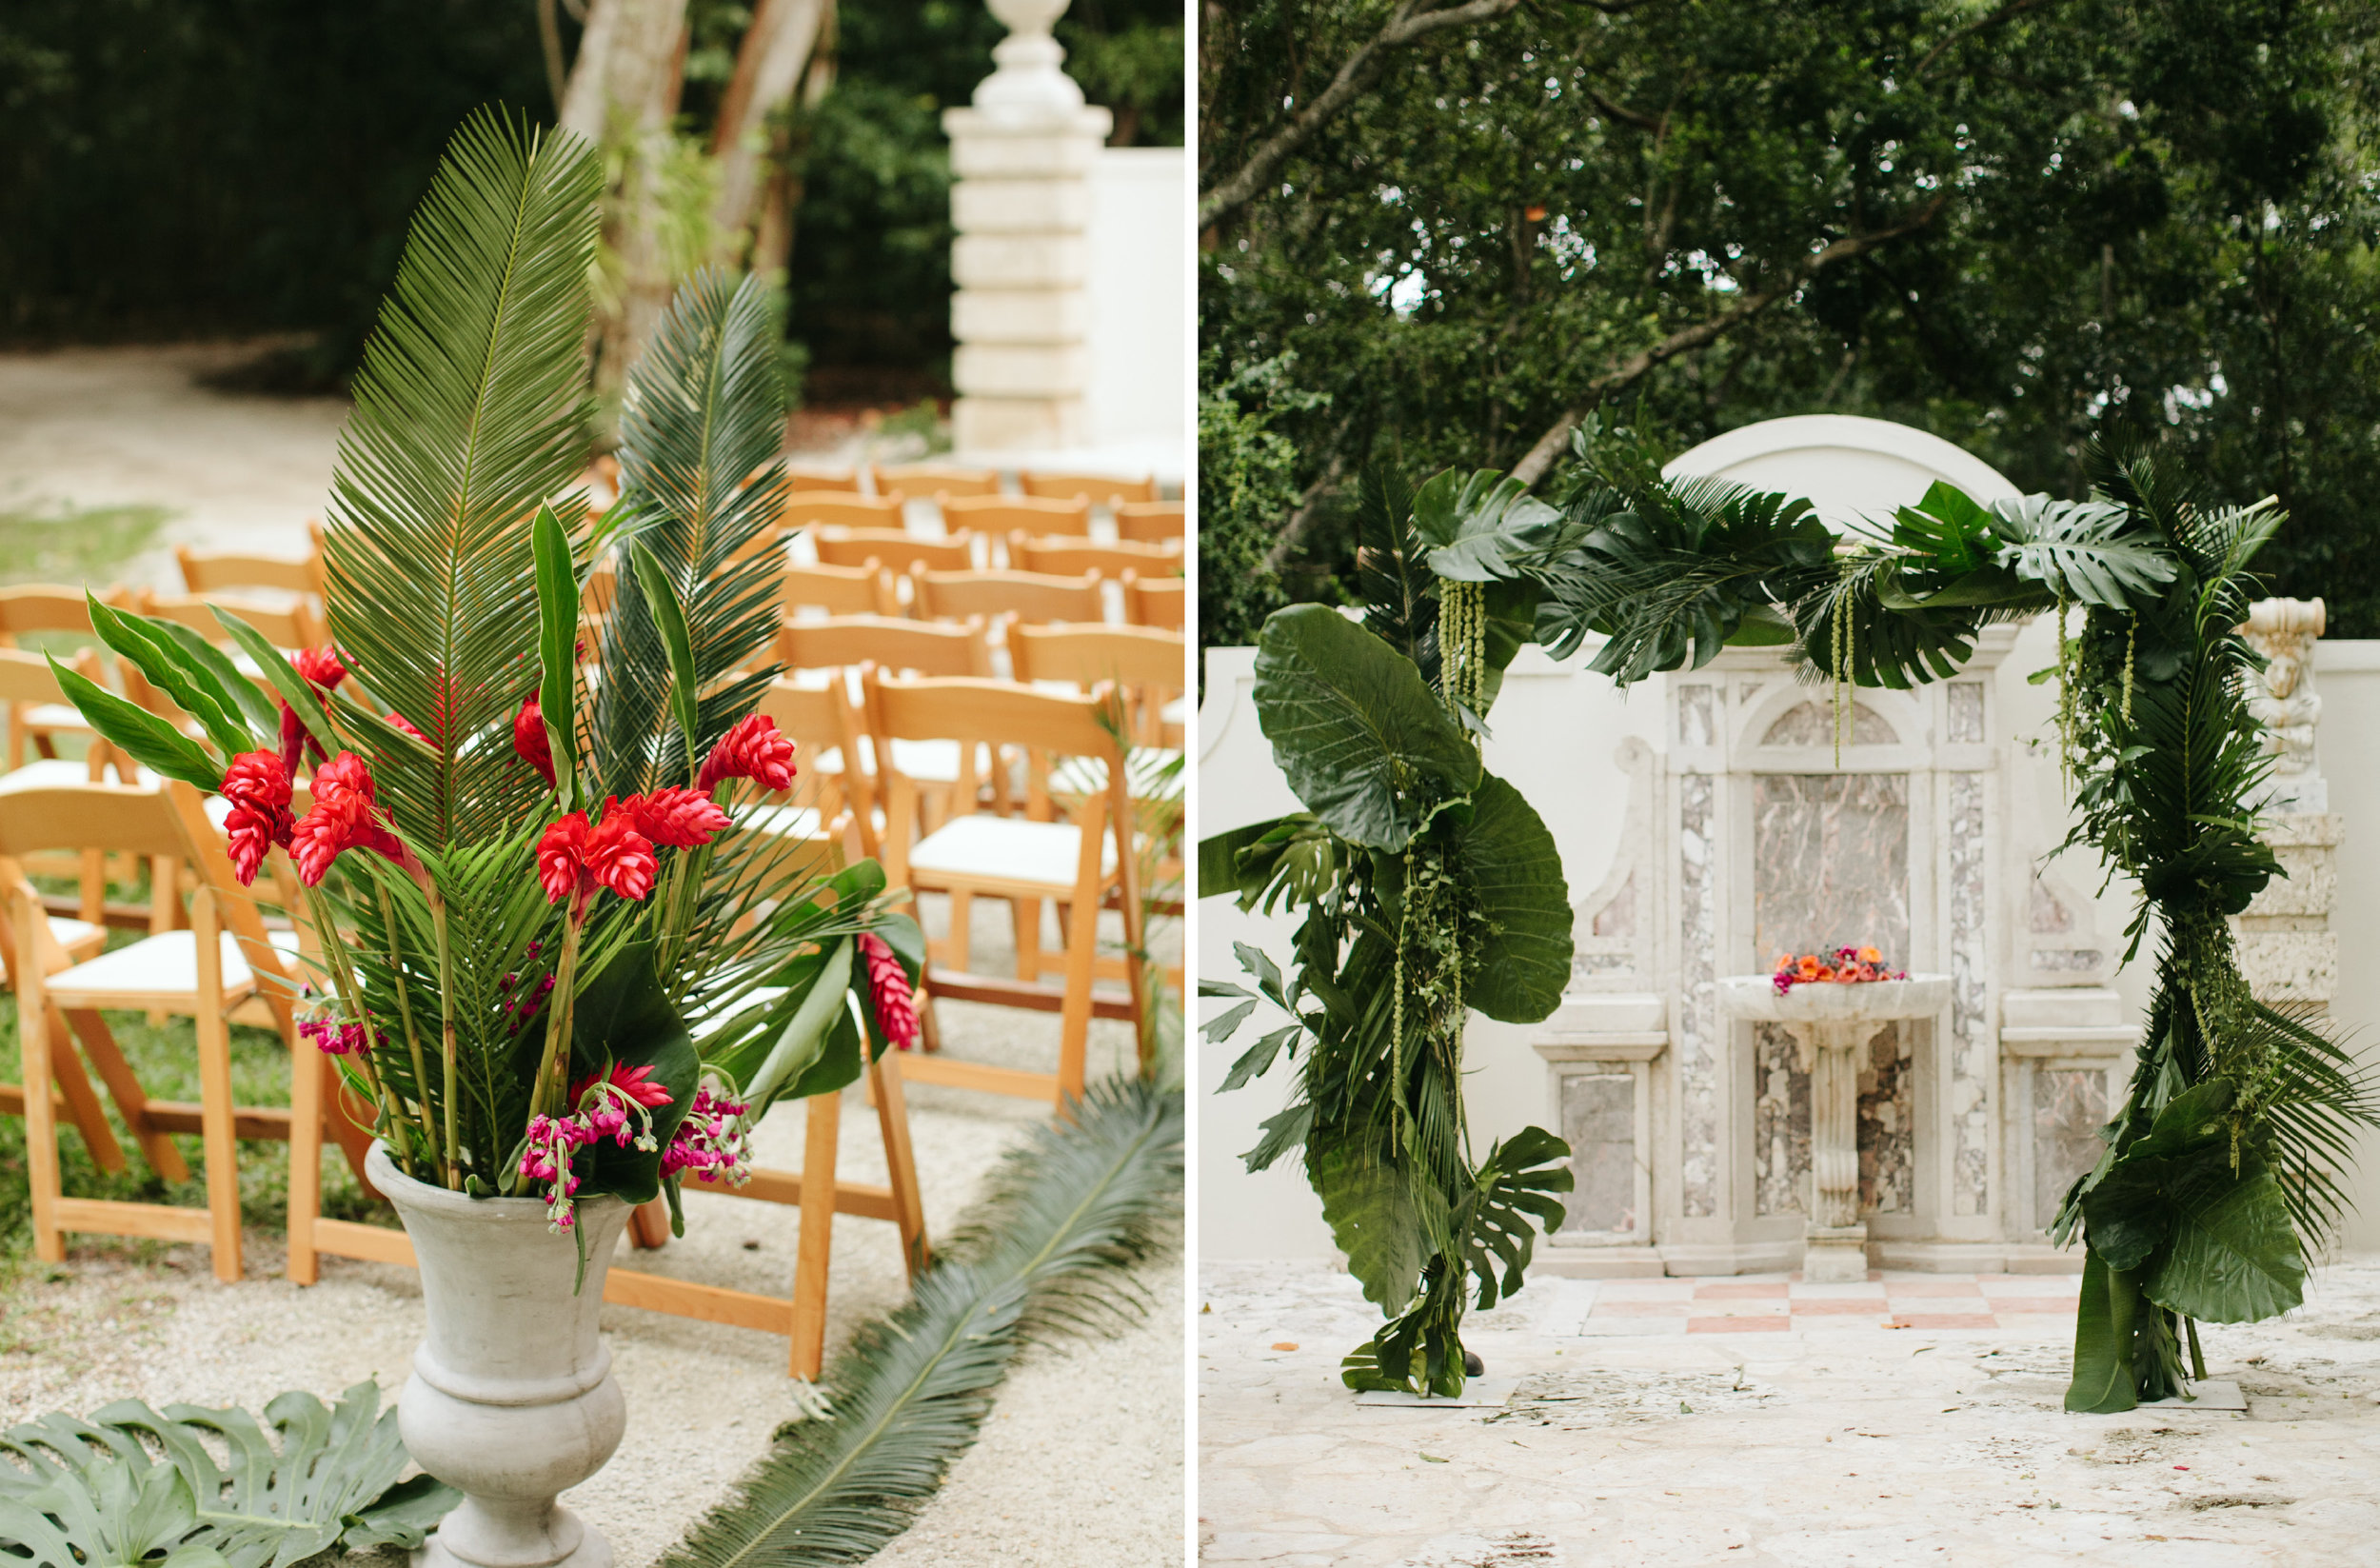 Heather + Greg's Wedding at the Bonnet House Ft Lauderdale46.jpg